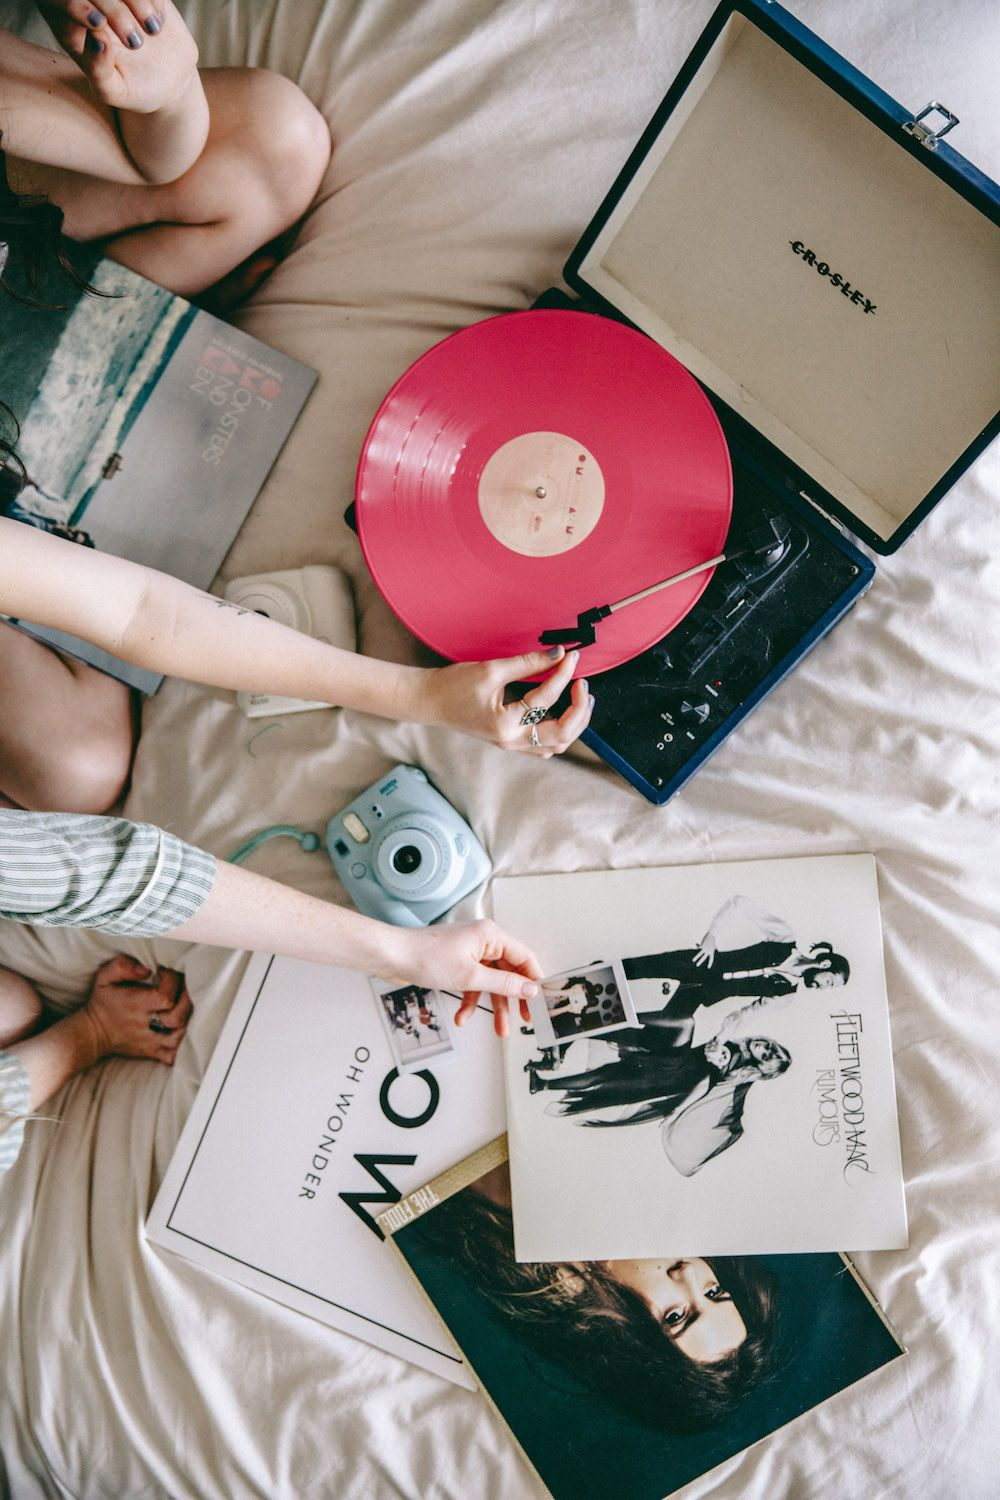 Urban outfitters blog uo guide the perfect night in for House music vinyl